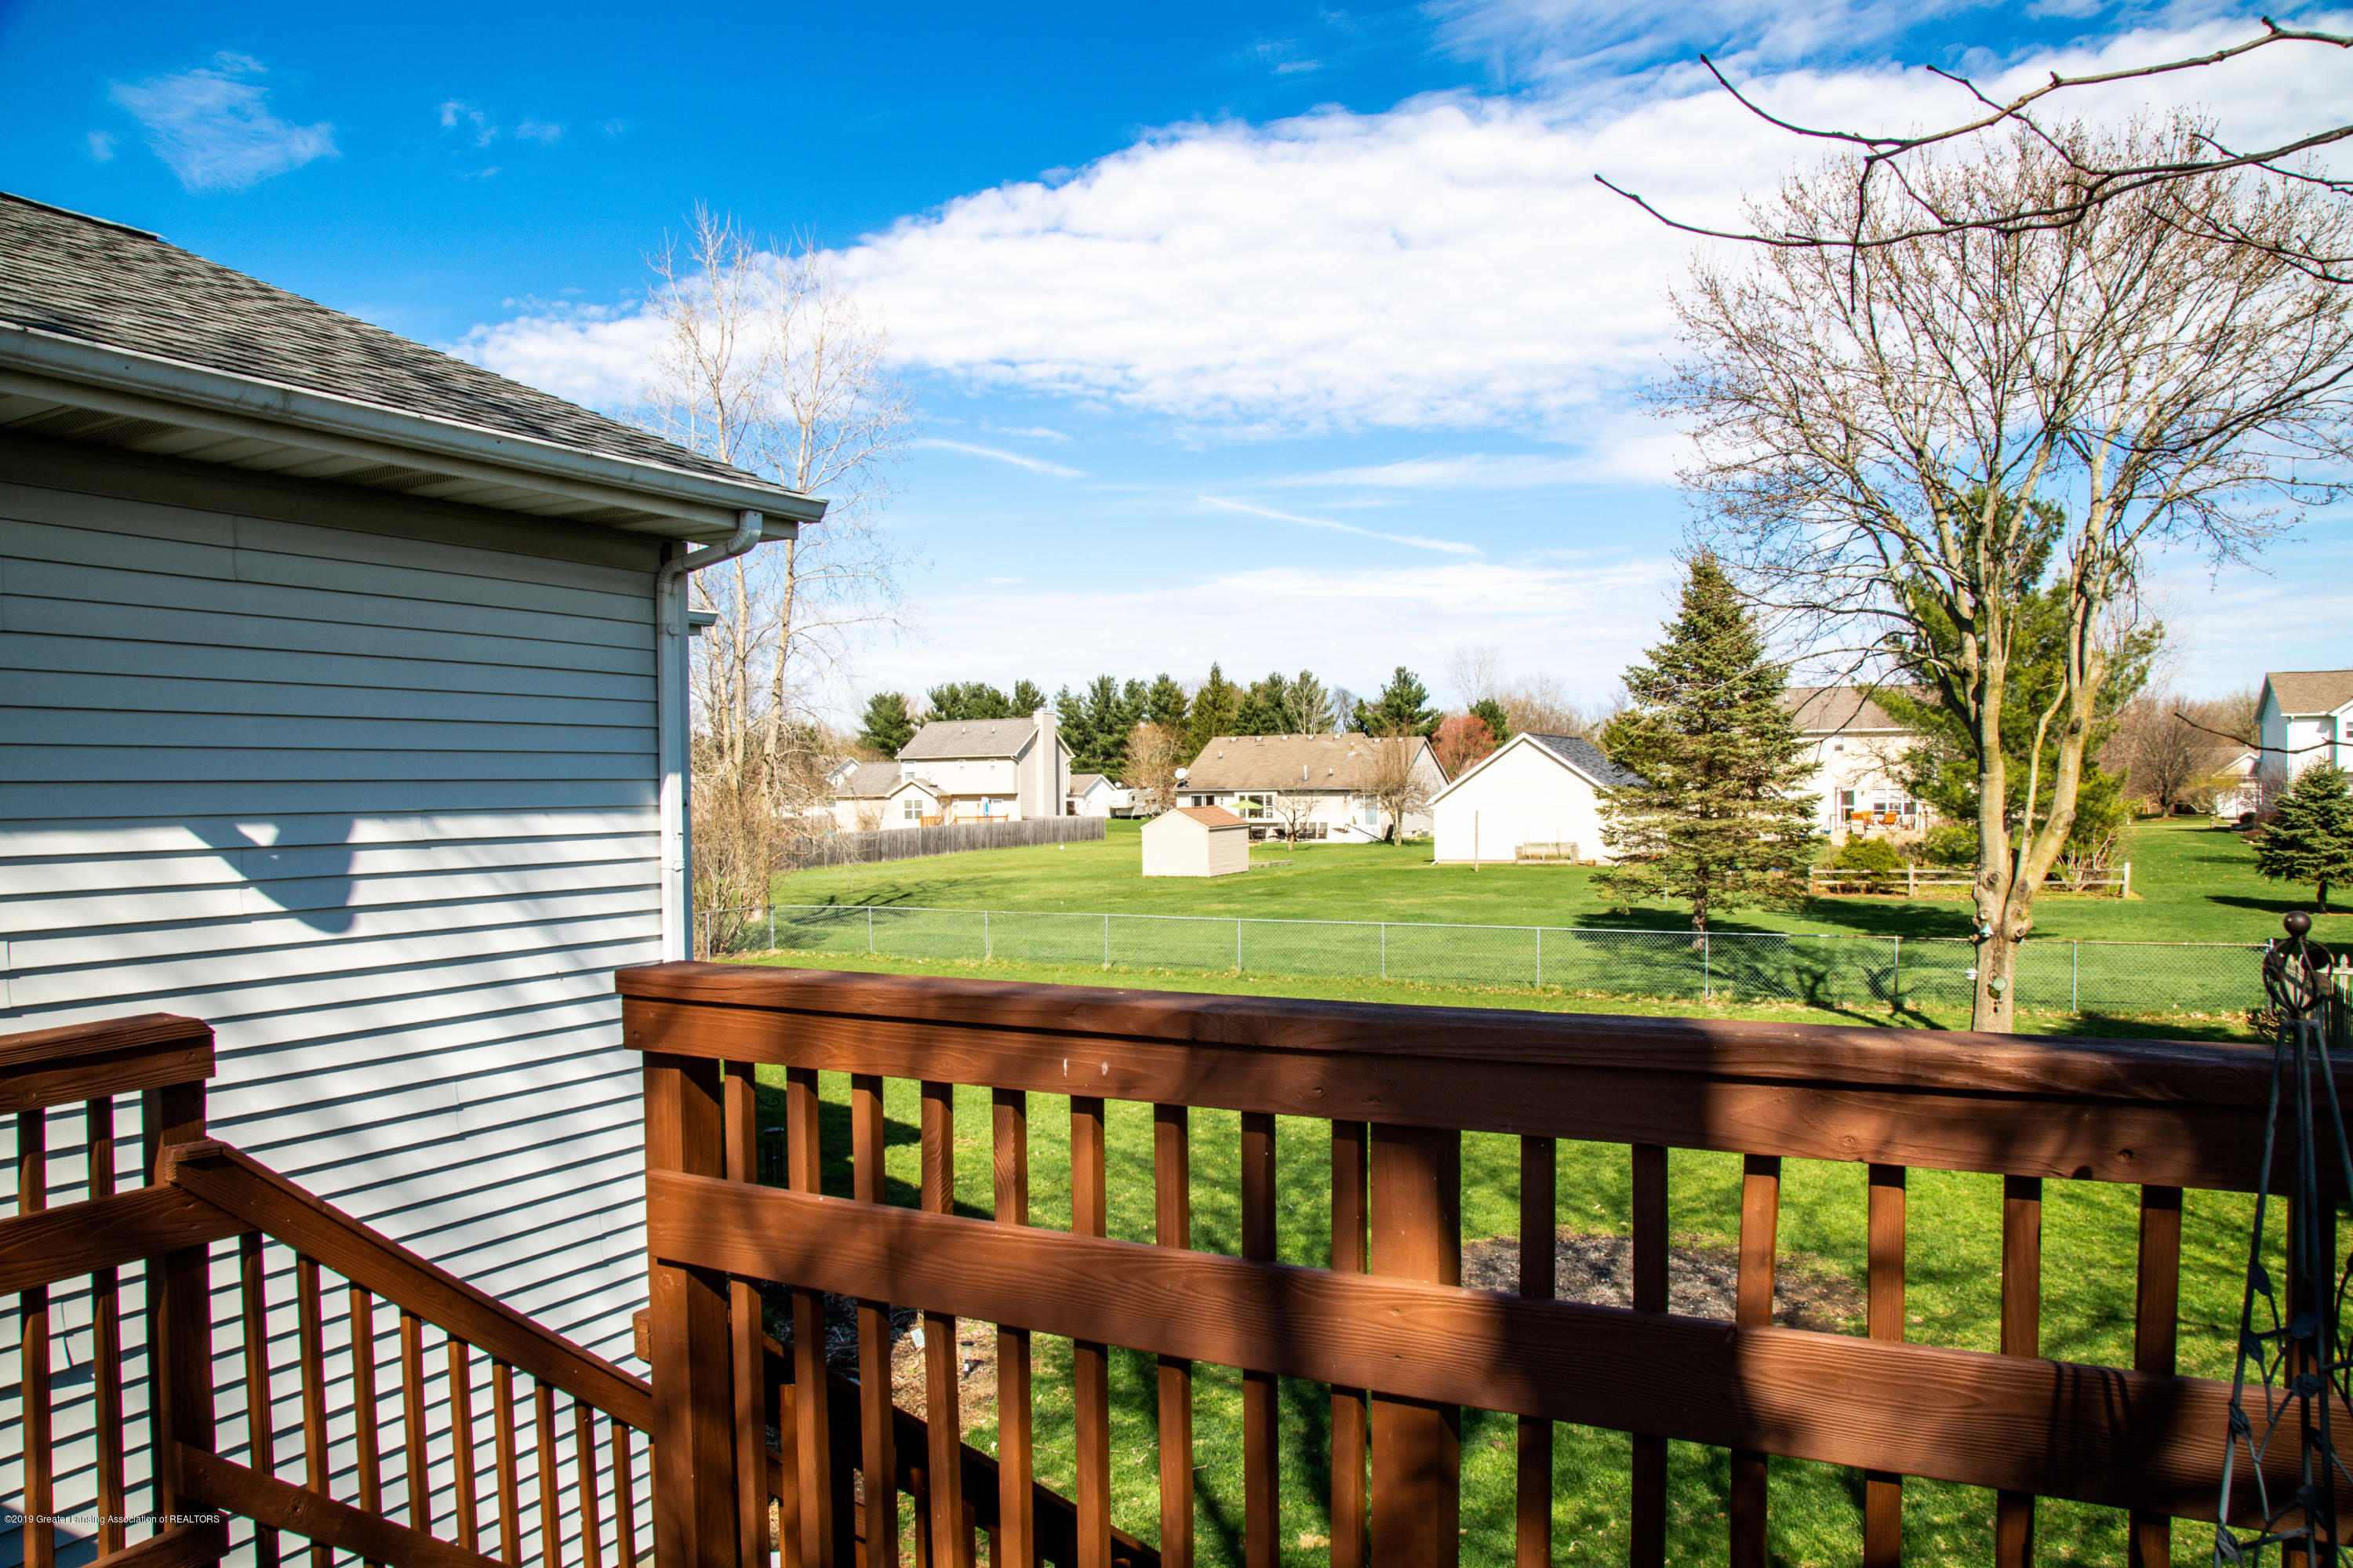 2450 Featherstone Dr - 20190421-942A2216 - 6